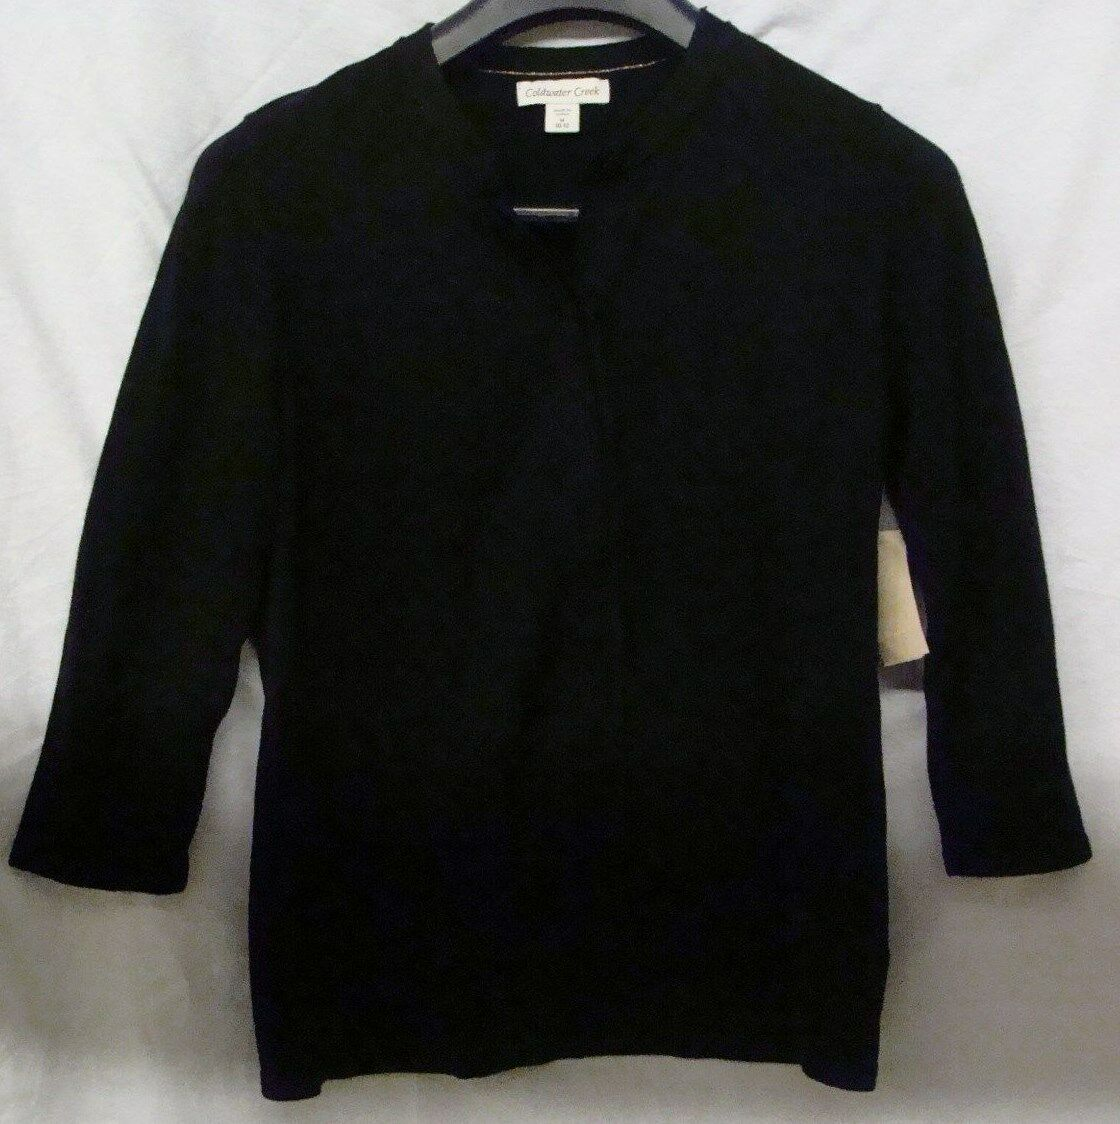 Coldwater Creek Woherren schwarz Silk Trim Cardigan  S, M